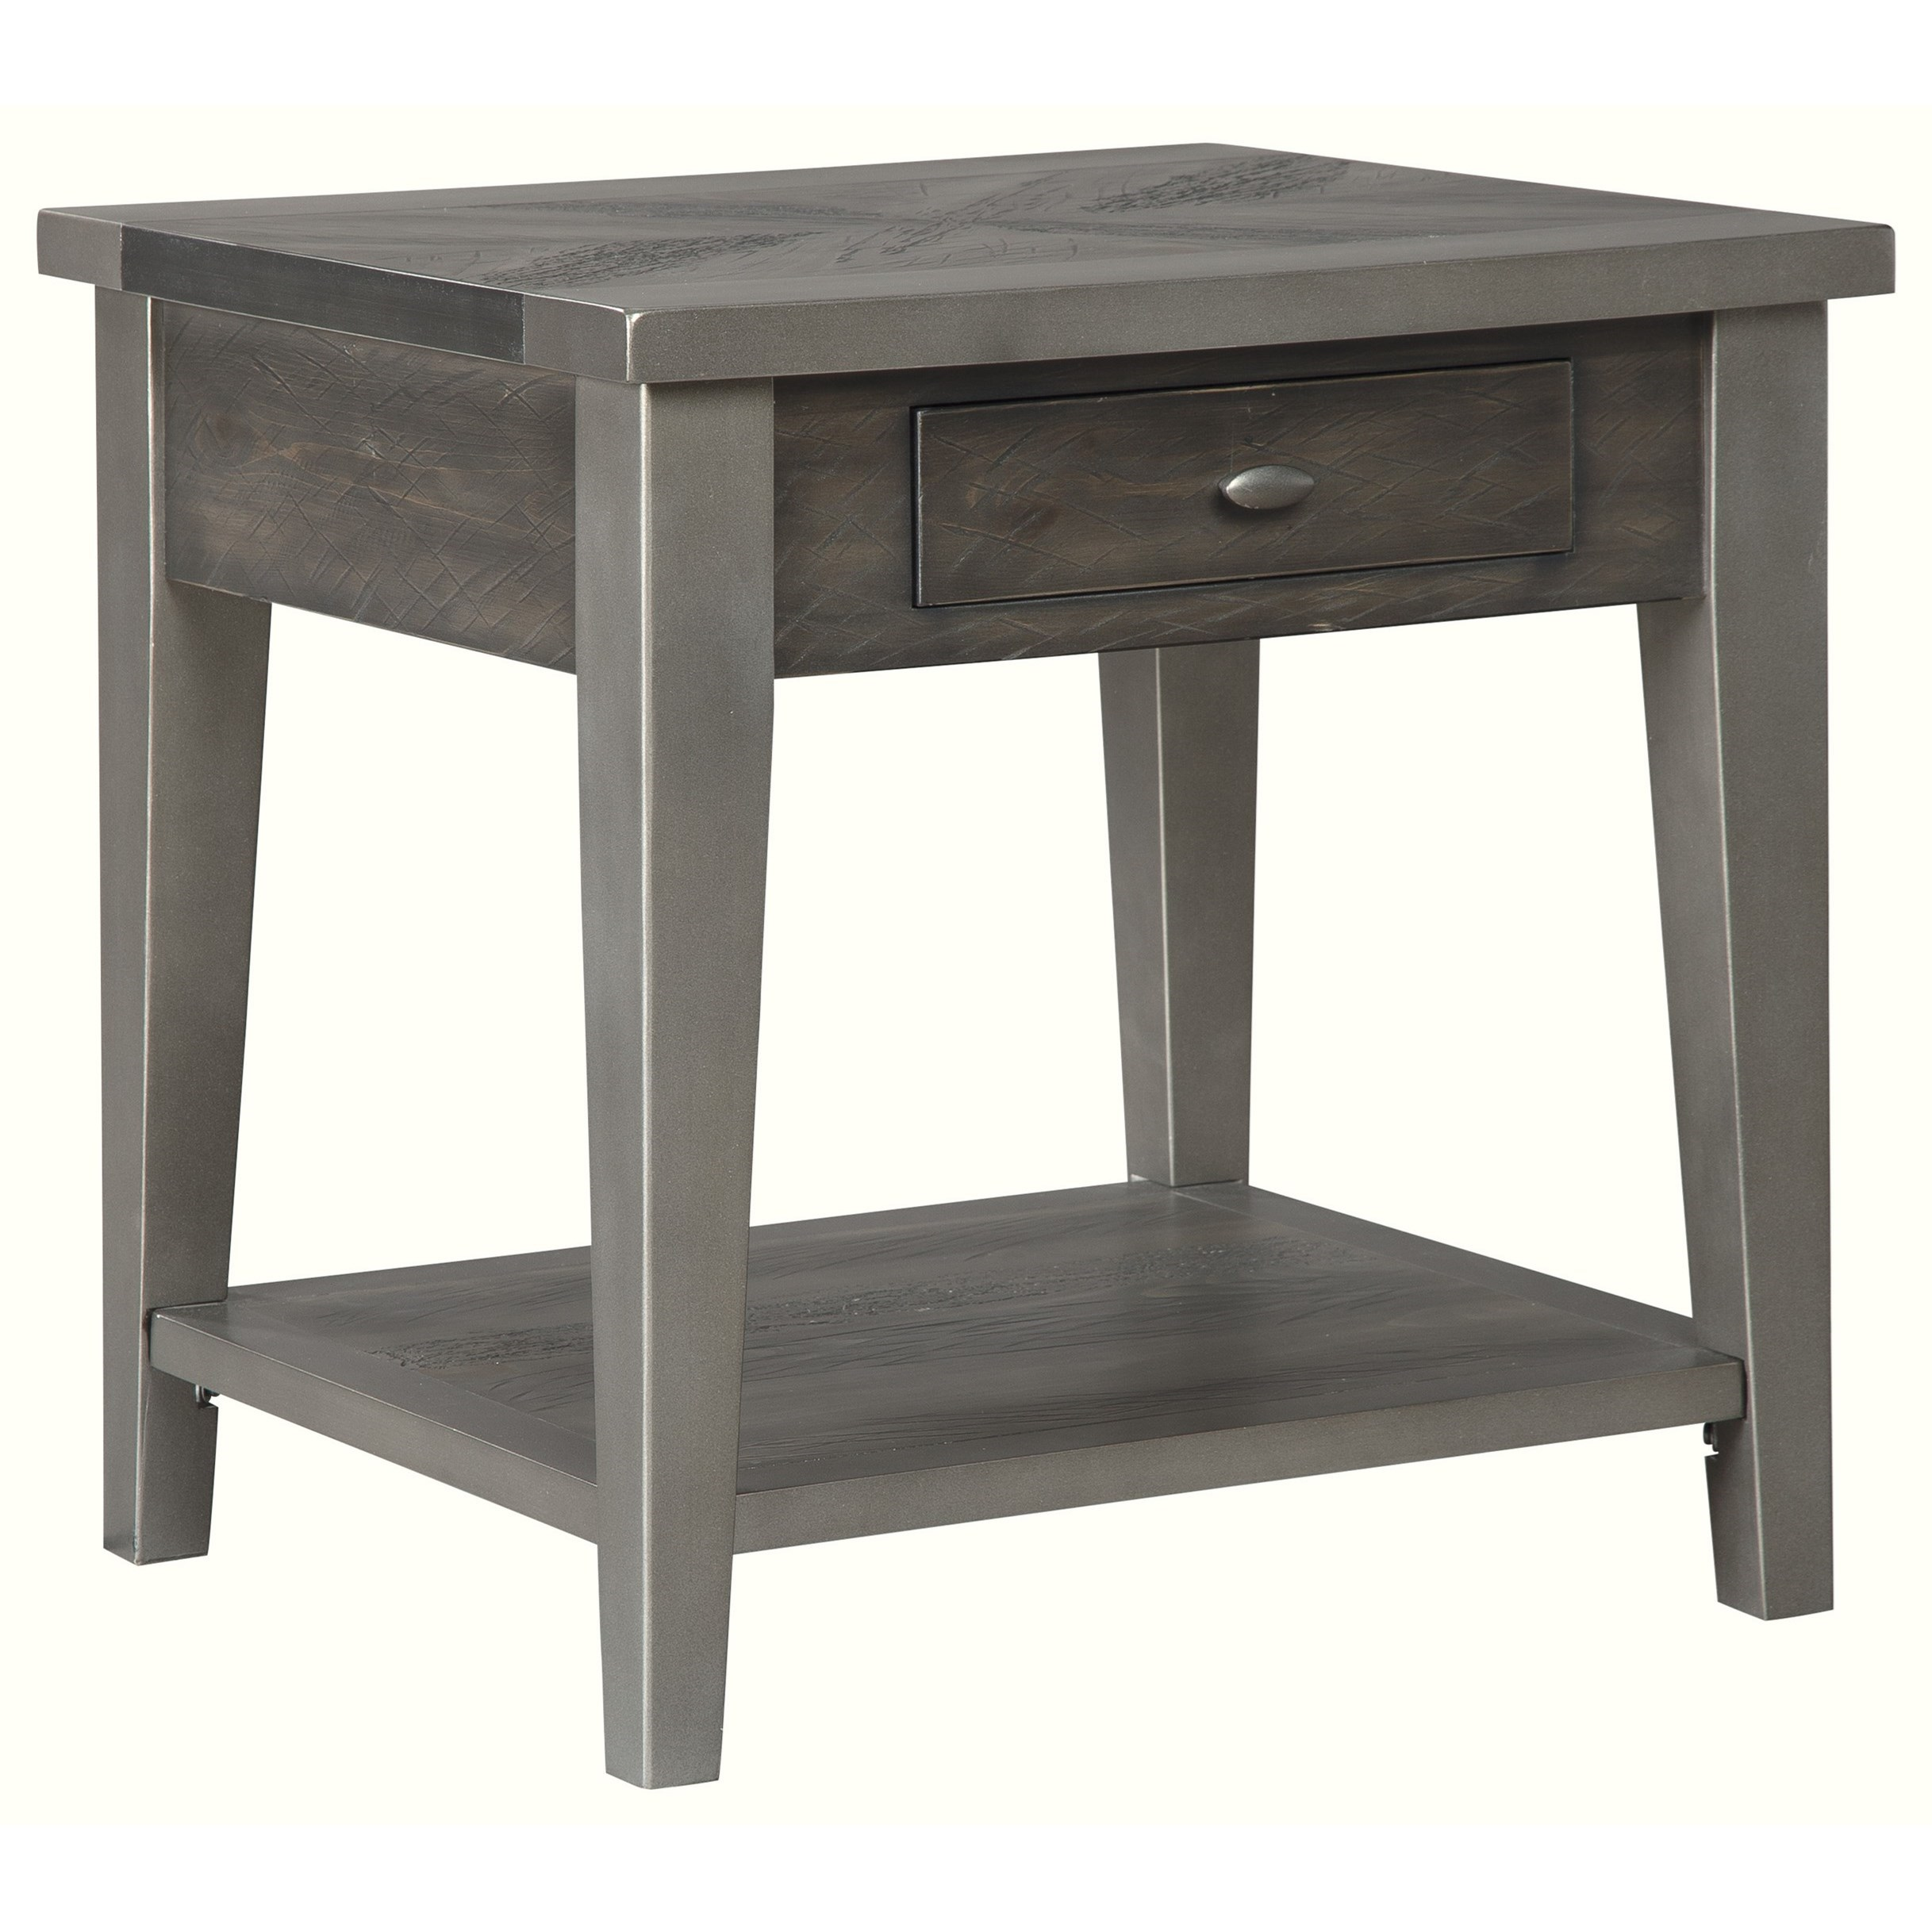 Branbury End Table by Signature Design by Ashley at Zak's Warehouse Clearance Center